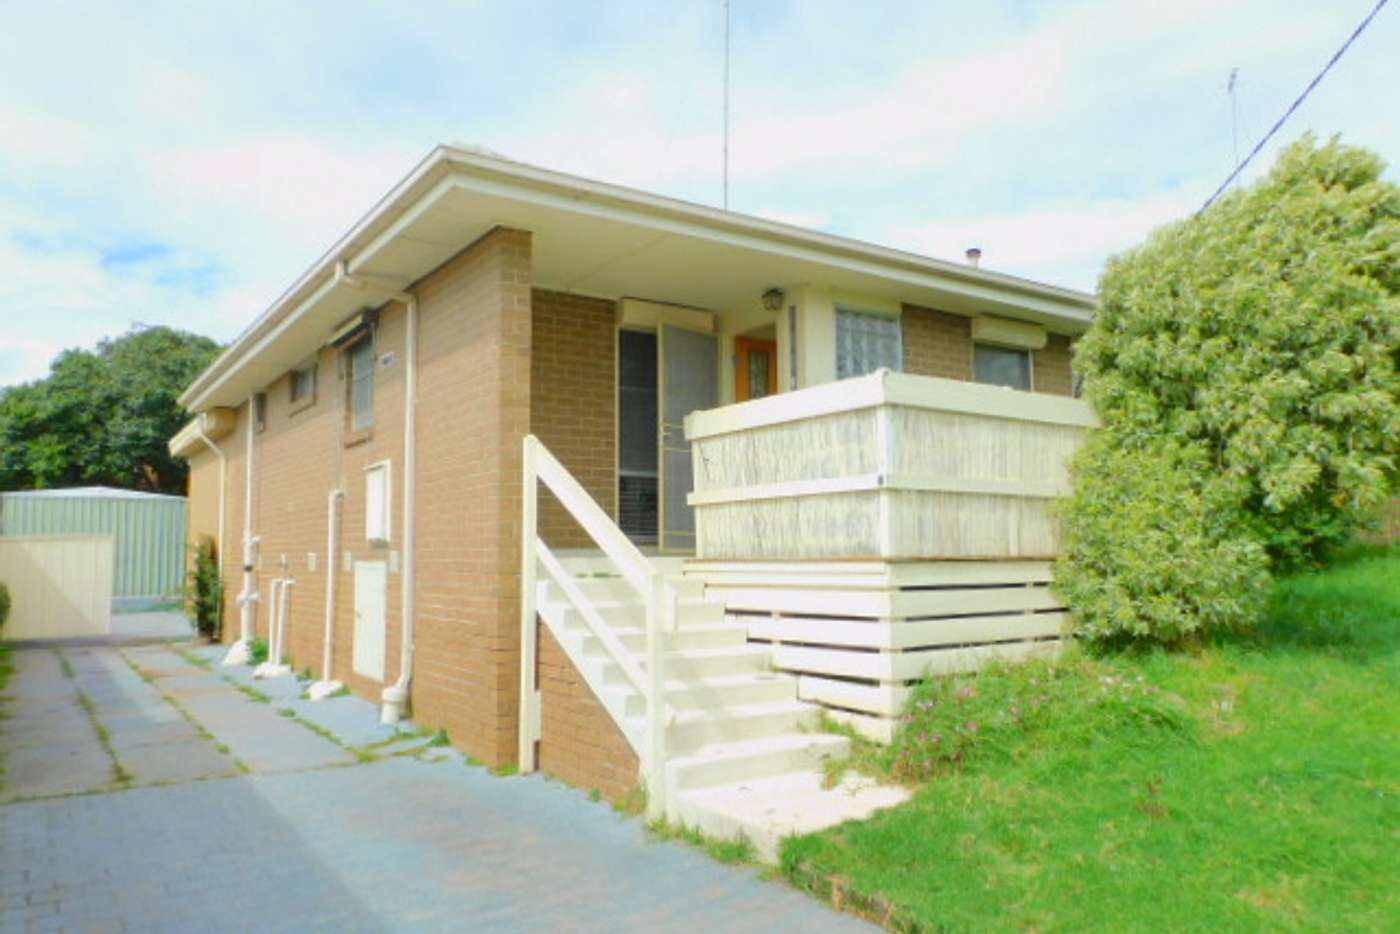 Main view of Homely house listing, 16 BENEMBRA Street, Broadmeadows VIC 3047